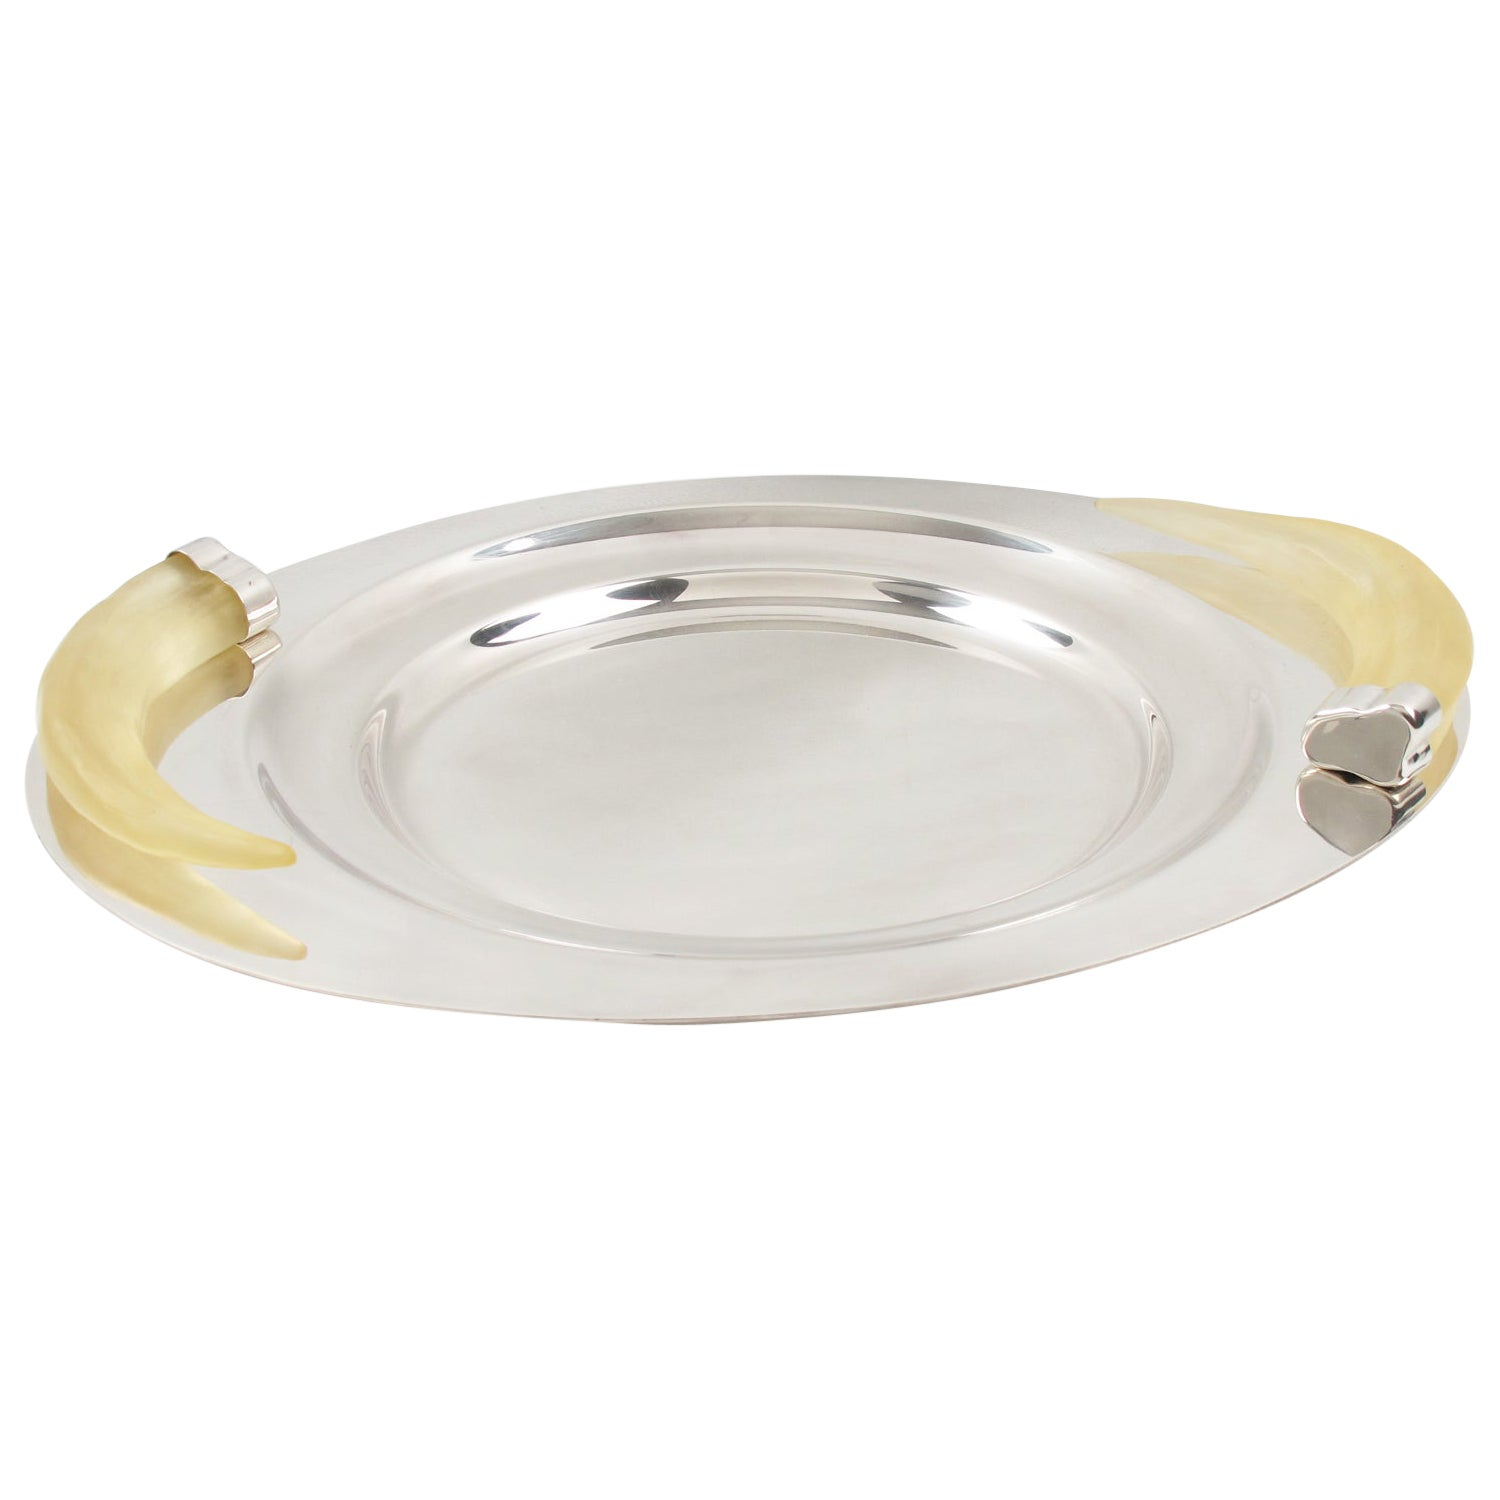 Prata Wolff Silver Plate Platter Tray with Lucite Horn Handles